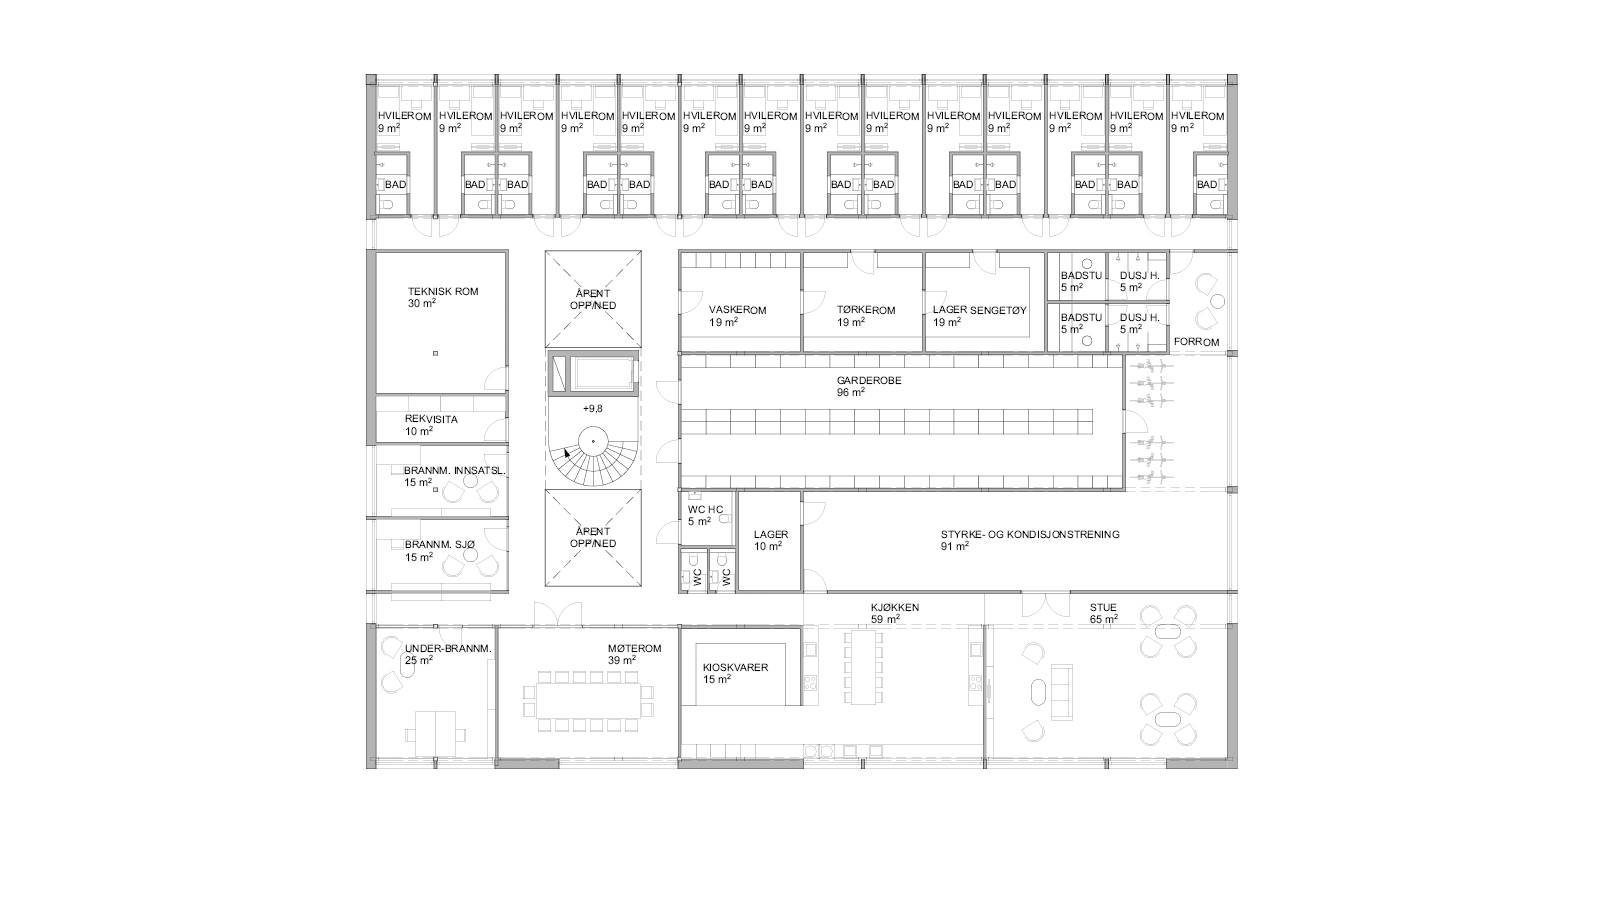 2ND FLOOR PLAN - Oslo Fire Station - SPOL Architects